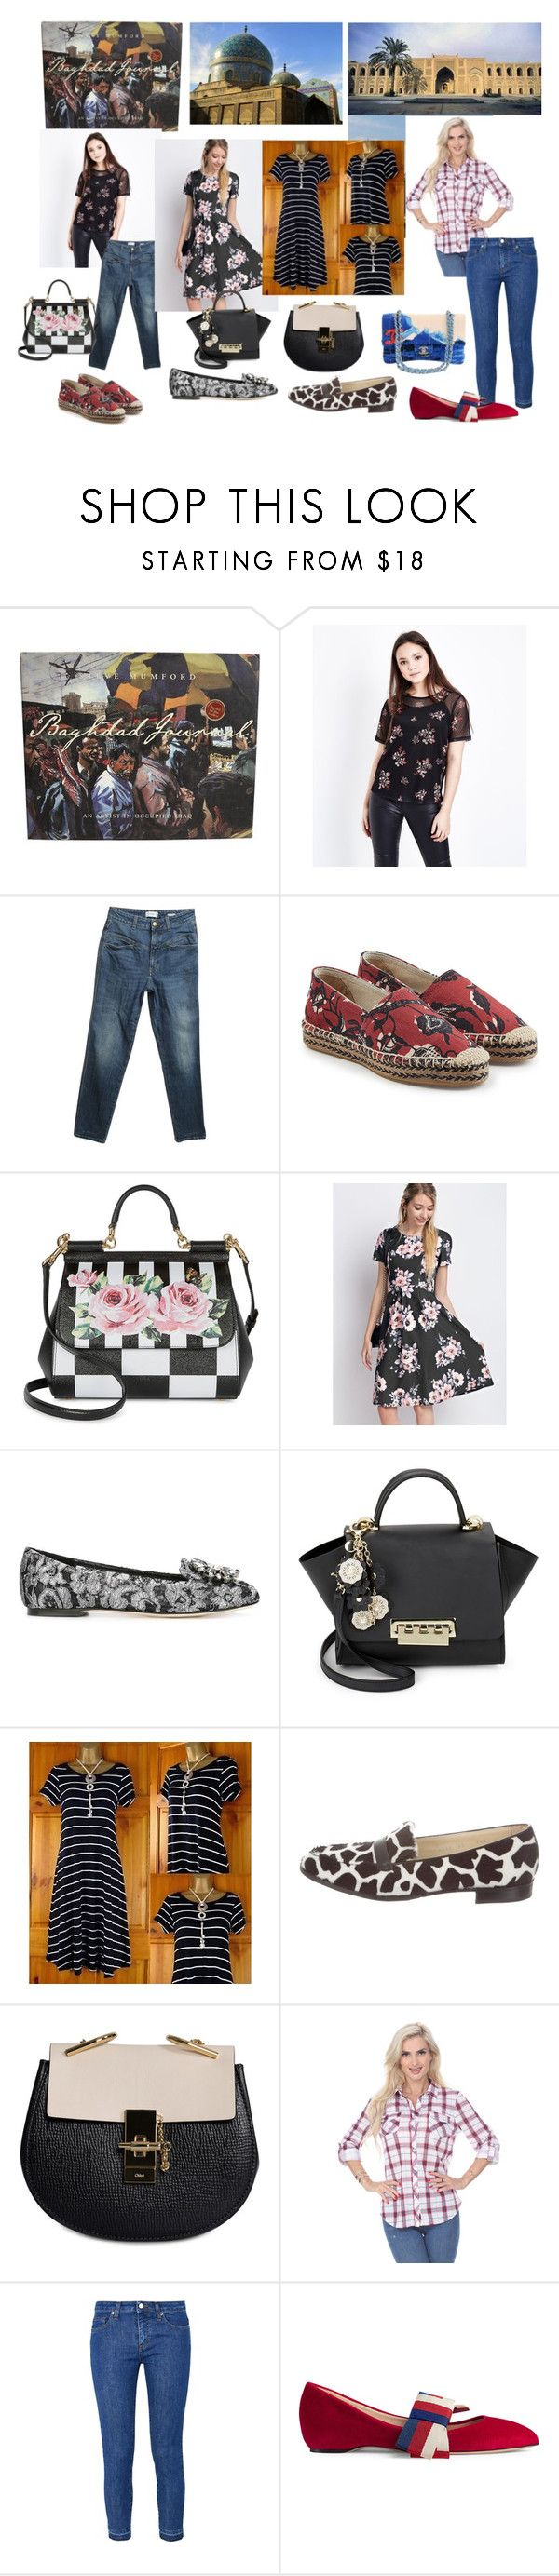 """Me, Stephanie, Genny and mum Baghdad visit"" by sarah-m-smith ❤ liked on Polyvore featuring New Look, Closed, Étoile Isabel Marant, Dolce&Gabbana, Jupe de Abby, ZAC Zac Posen, Sarah Flint, Chloé, 8 and Gucci"